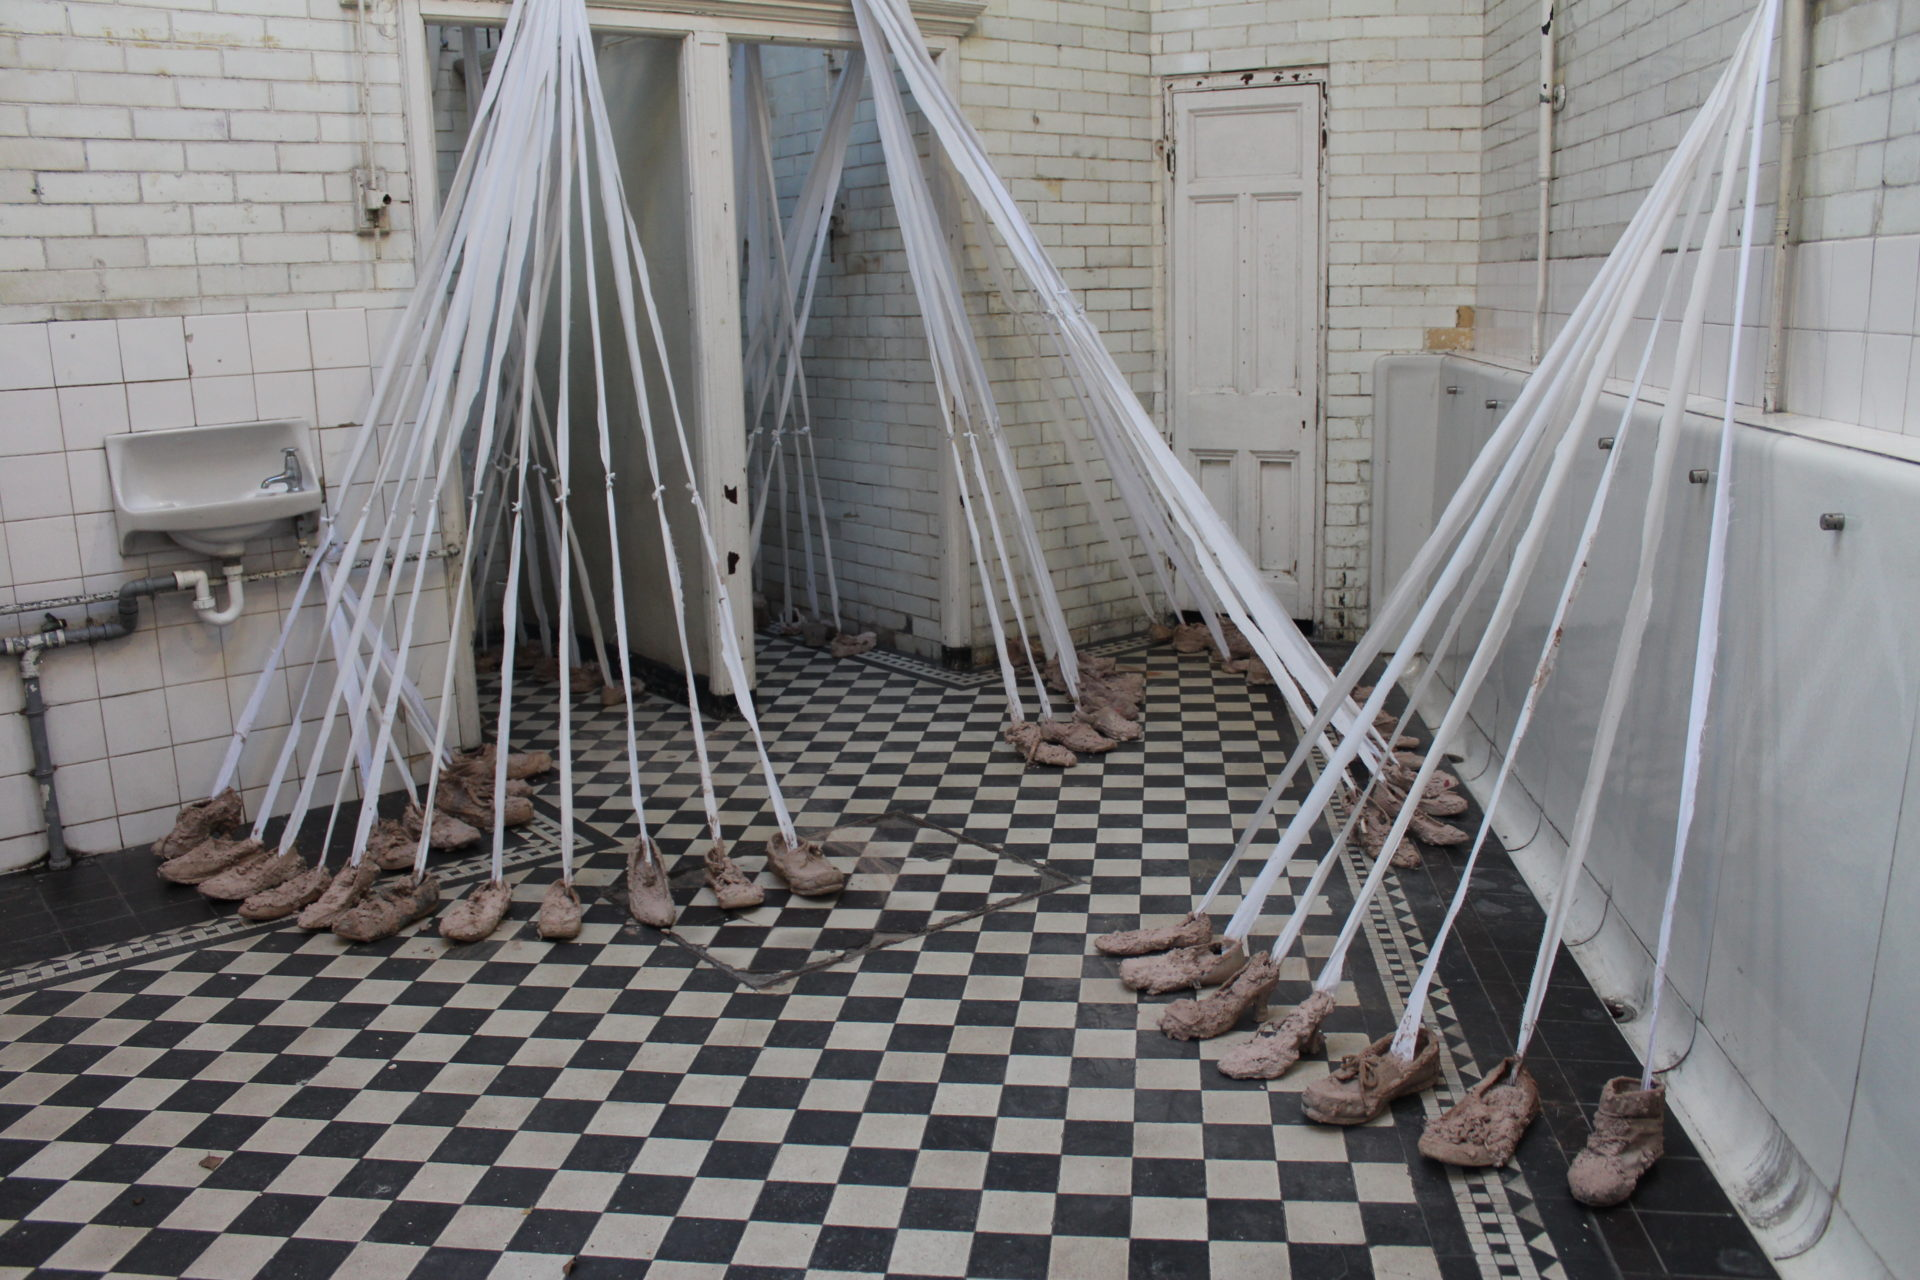 Installation Art -  shoes on a black and white tiled floor and ribbons connecting the shoes to the ceiling